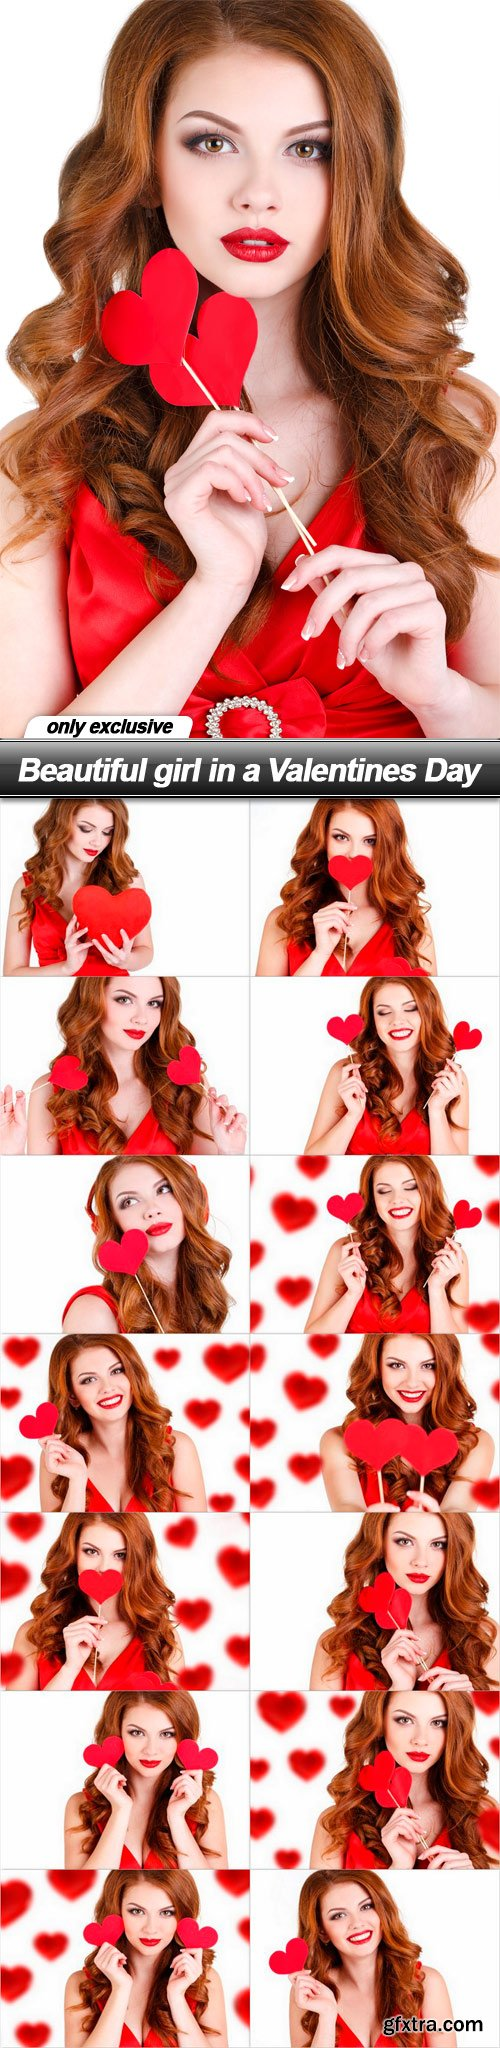 Beautiful girl in a Valentines Day - 15 UHQ JPEG